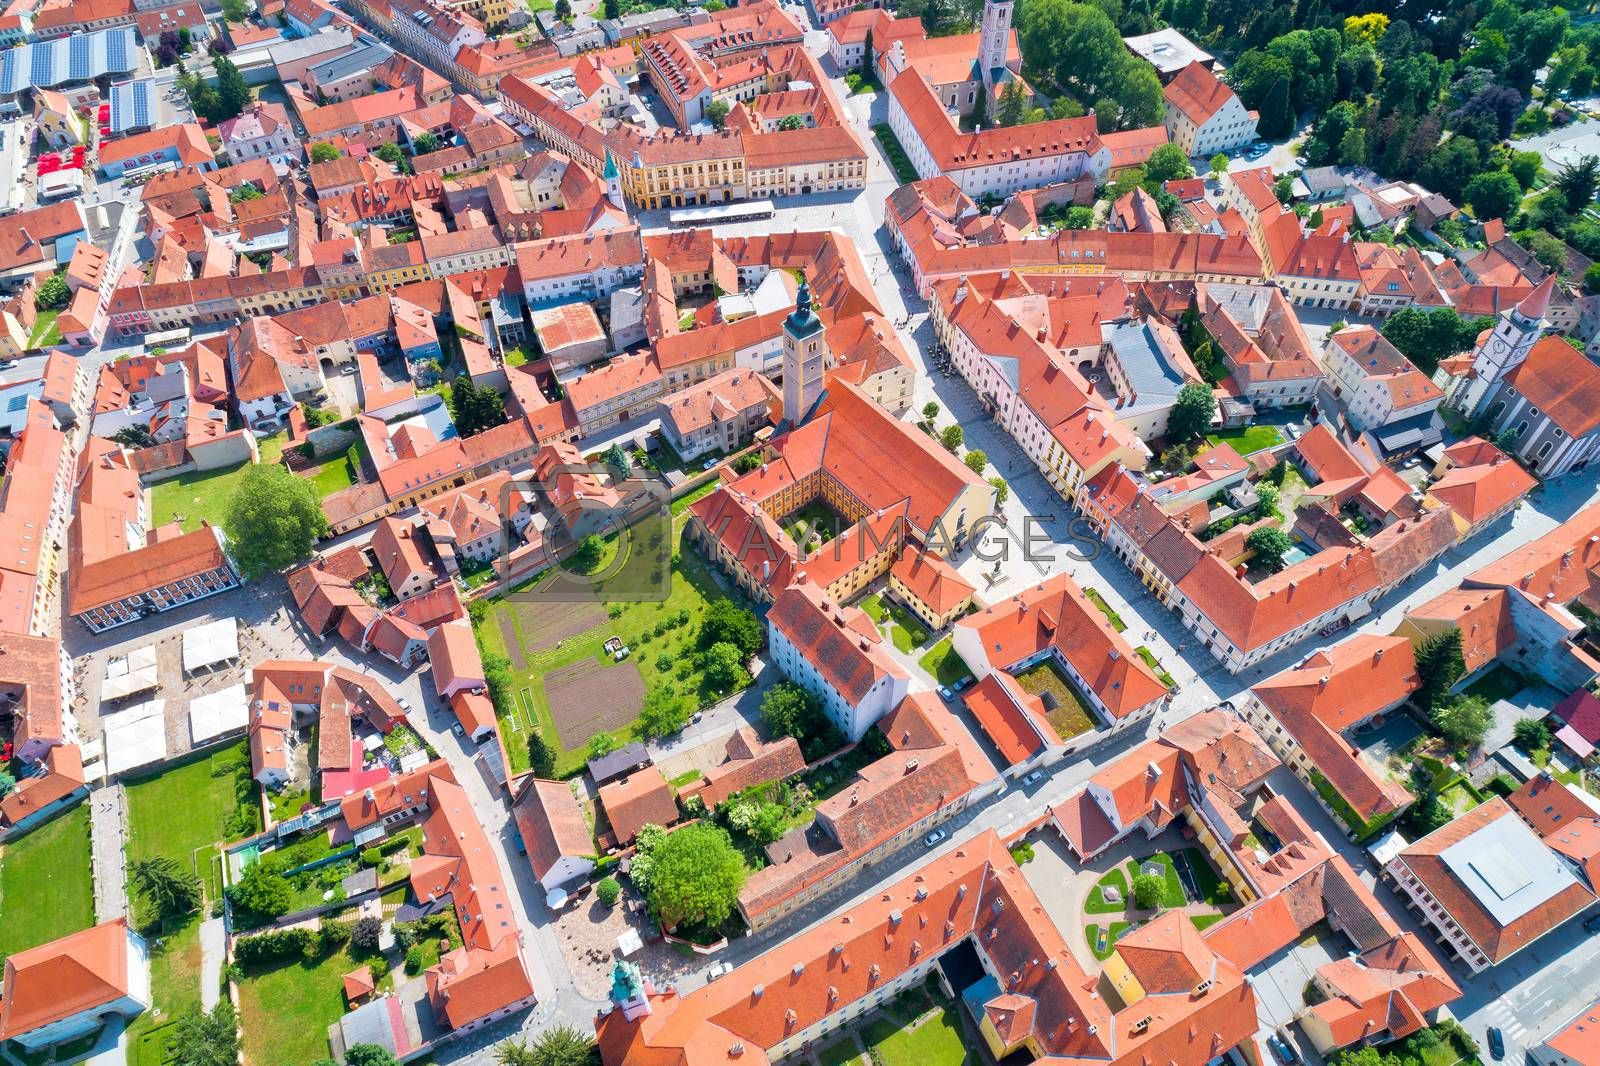 Town of Varazdin historic center aerial view, northern Croatia